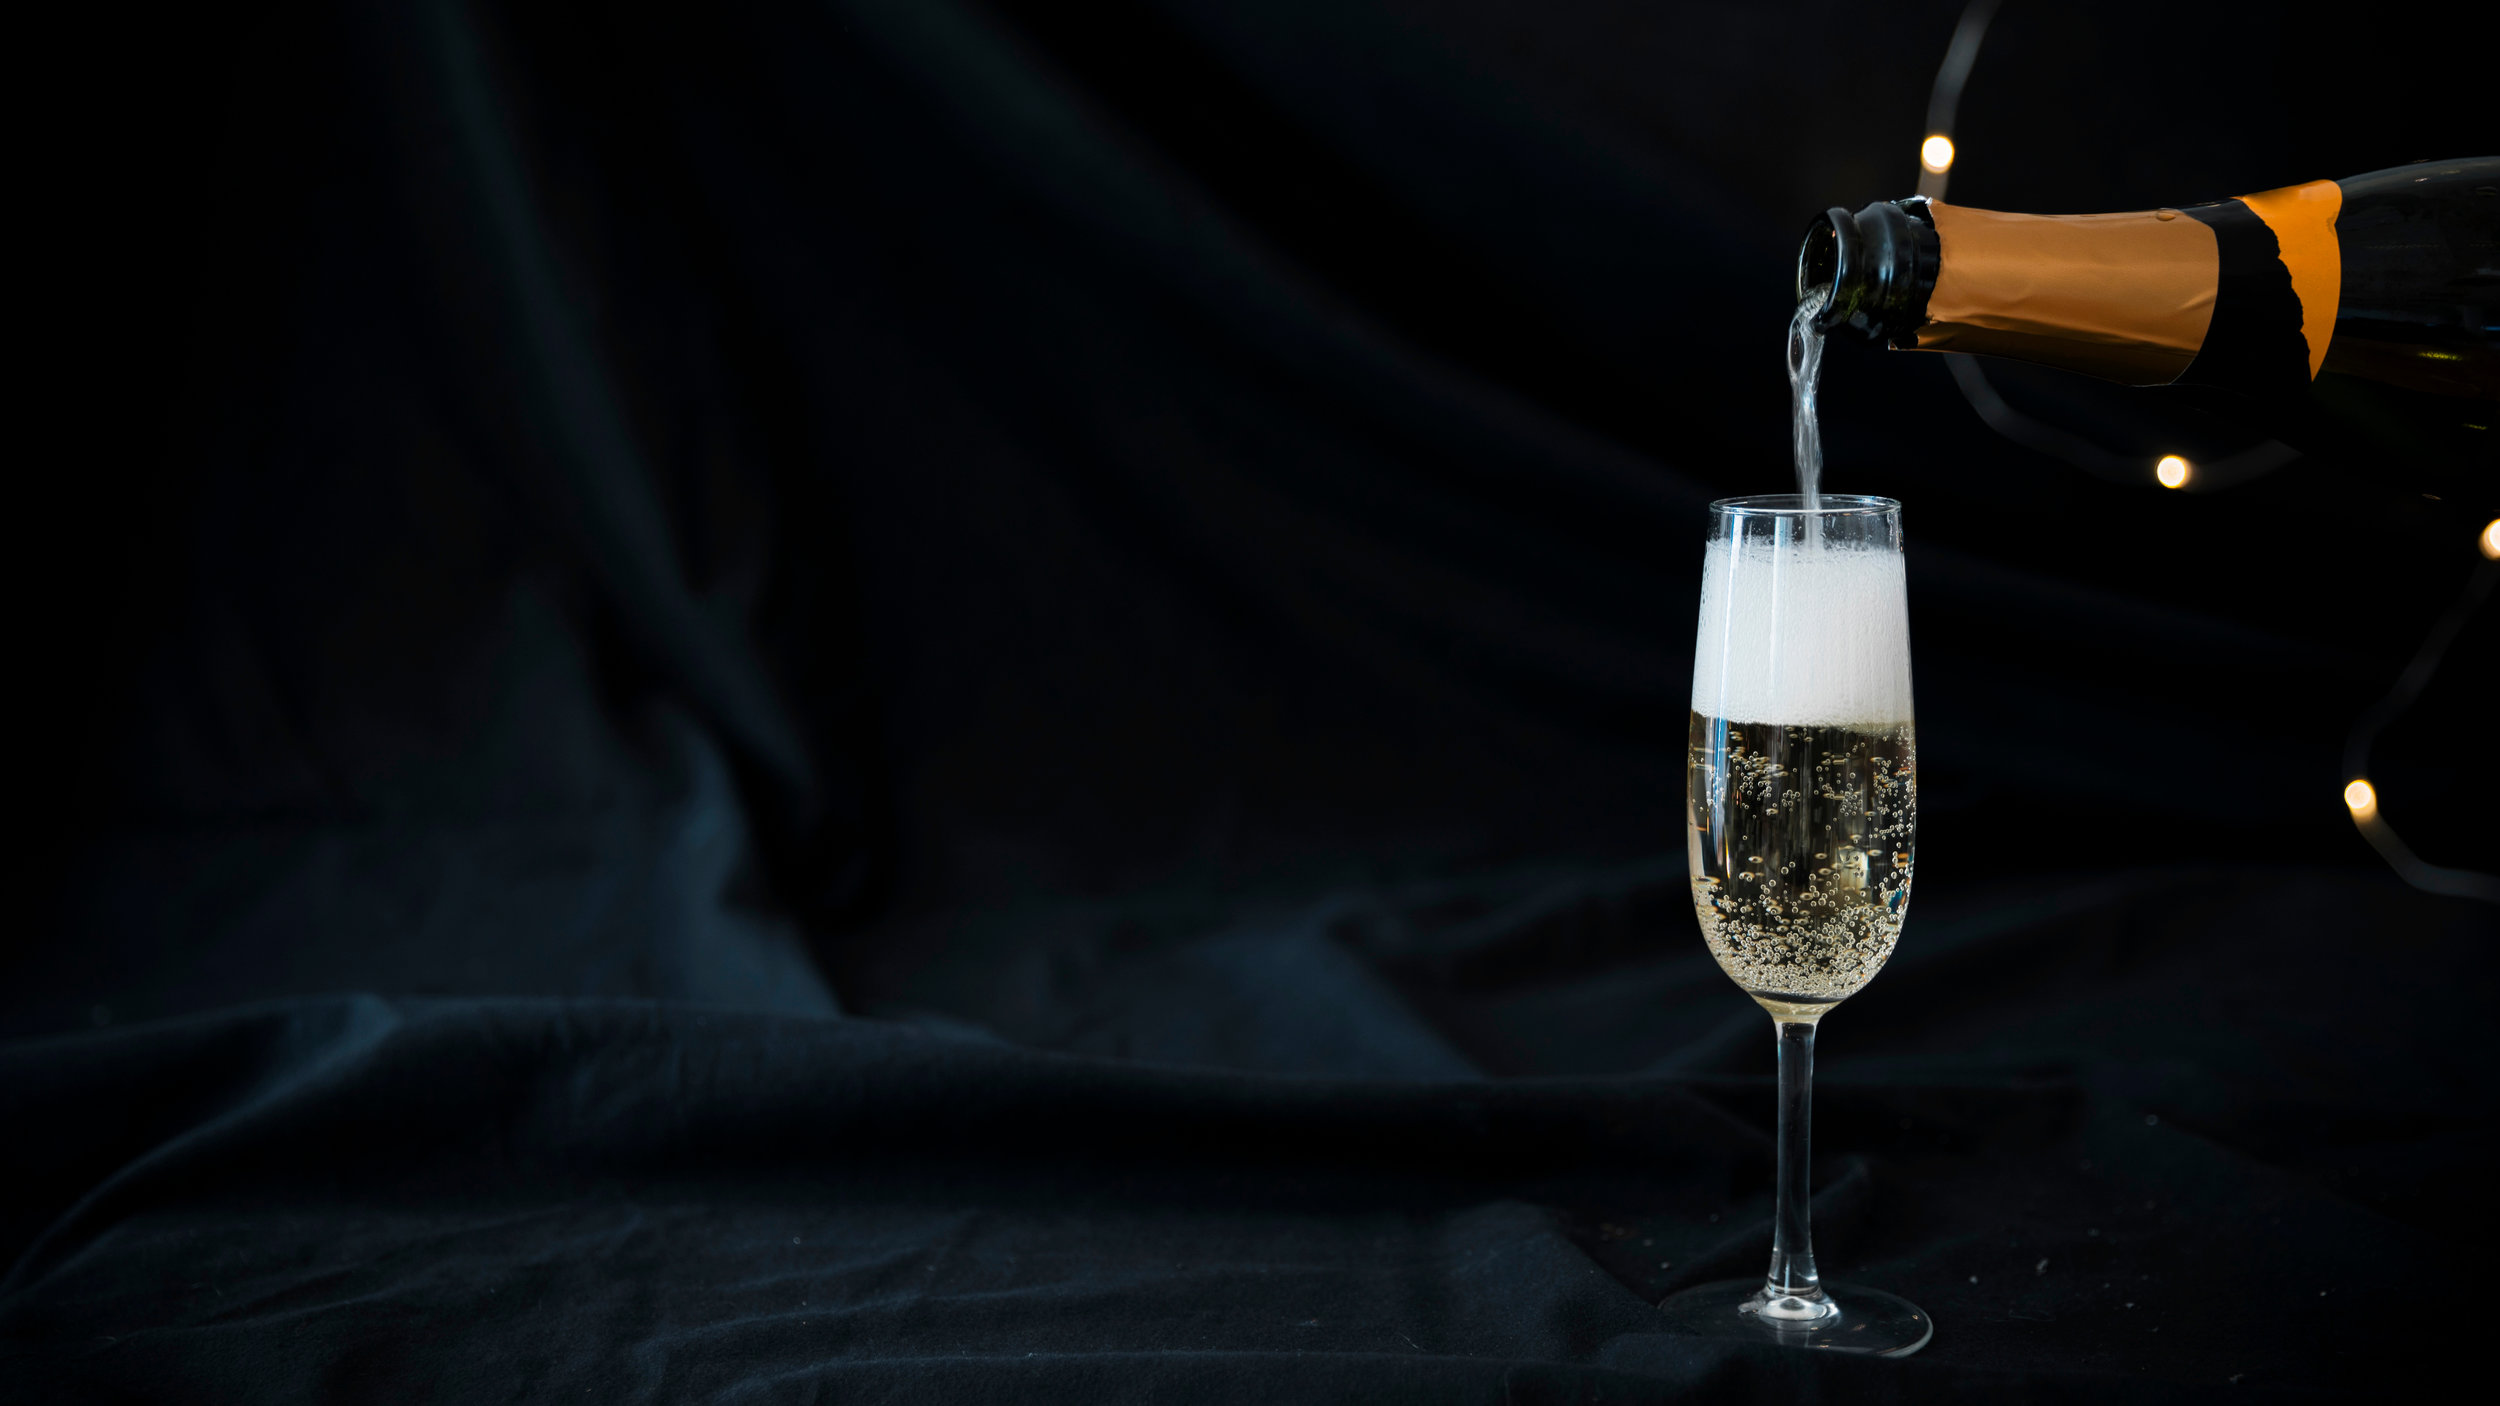 Premium Champagne Glasses, Crystal Flutes. - Luxury champagne coupes are available plain or with vintage engraved options. Victorian patterns present a vintage aesthetic, matching perfectly with classic champagne cocktails.